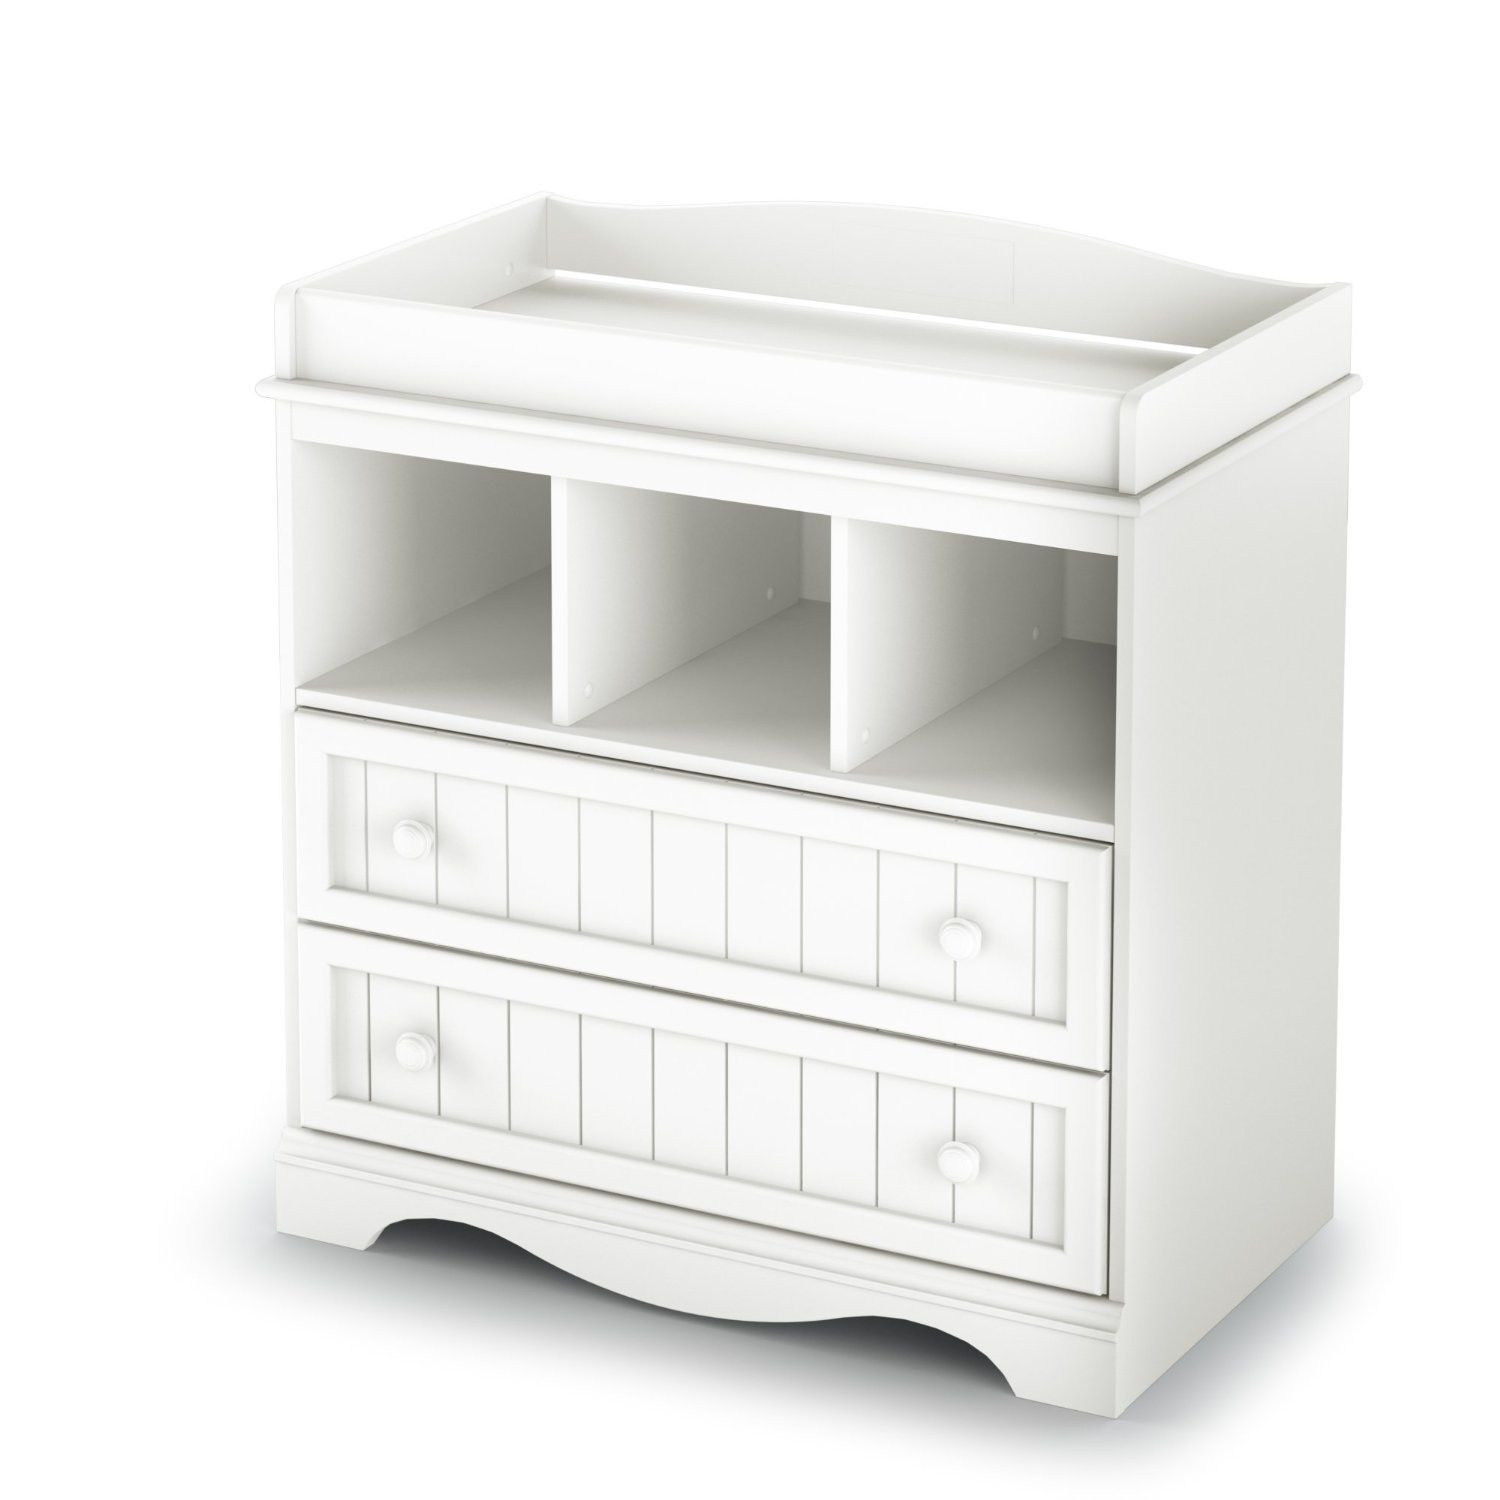 and with dresser drawers marcus me quotations table get dream on shopping french guides white changing cheap find